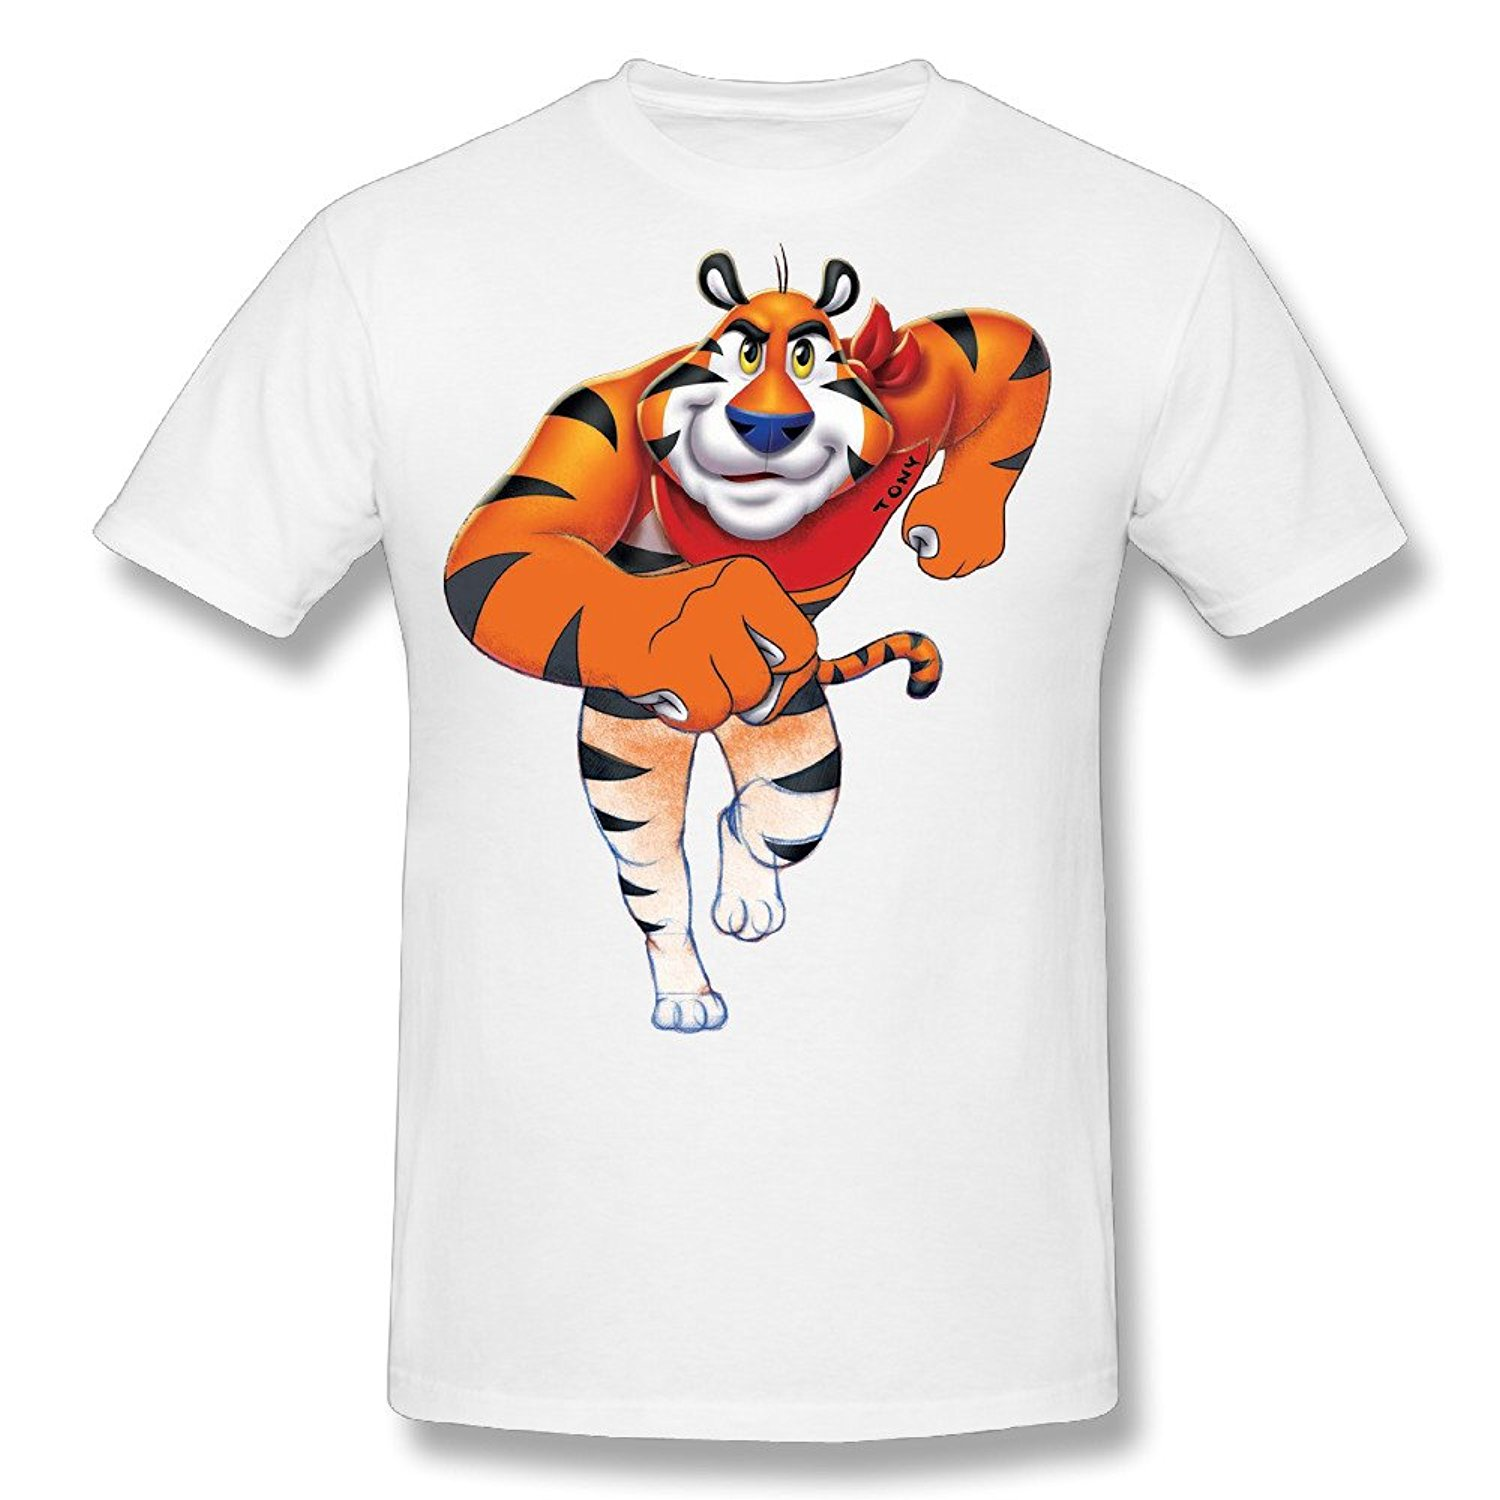 2017 New Arrival Funny Mens Tops Cool O Neck T-Shirt Flesiciate1 Male Runny Tony Tiger Design T Shirt